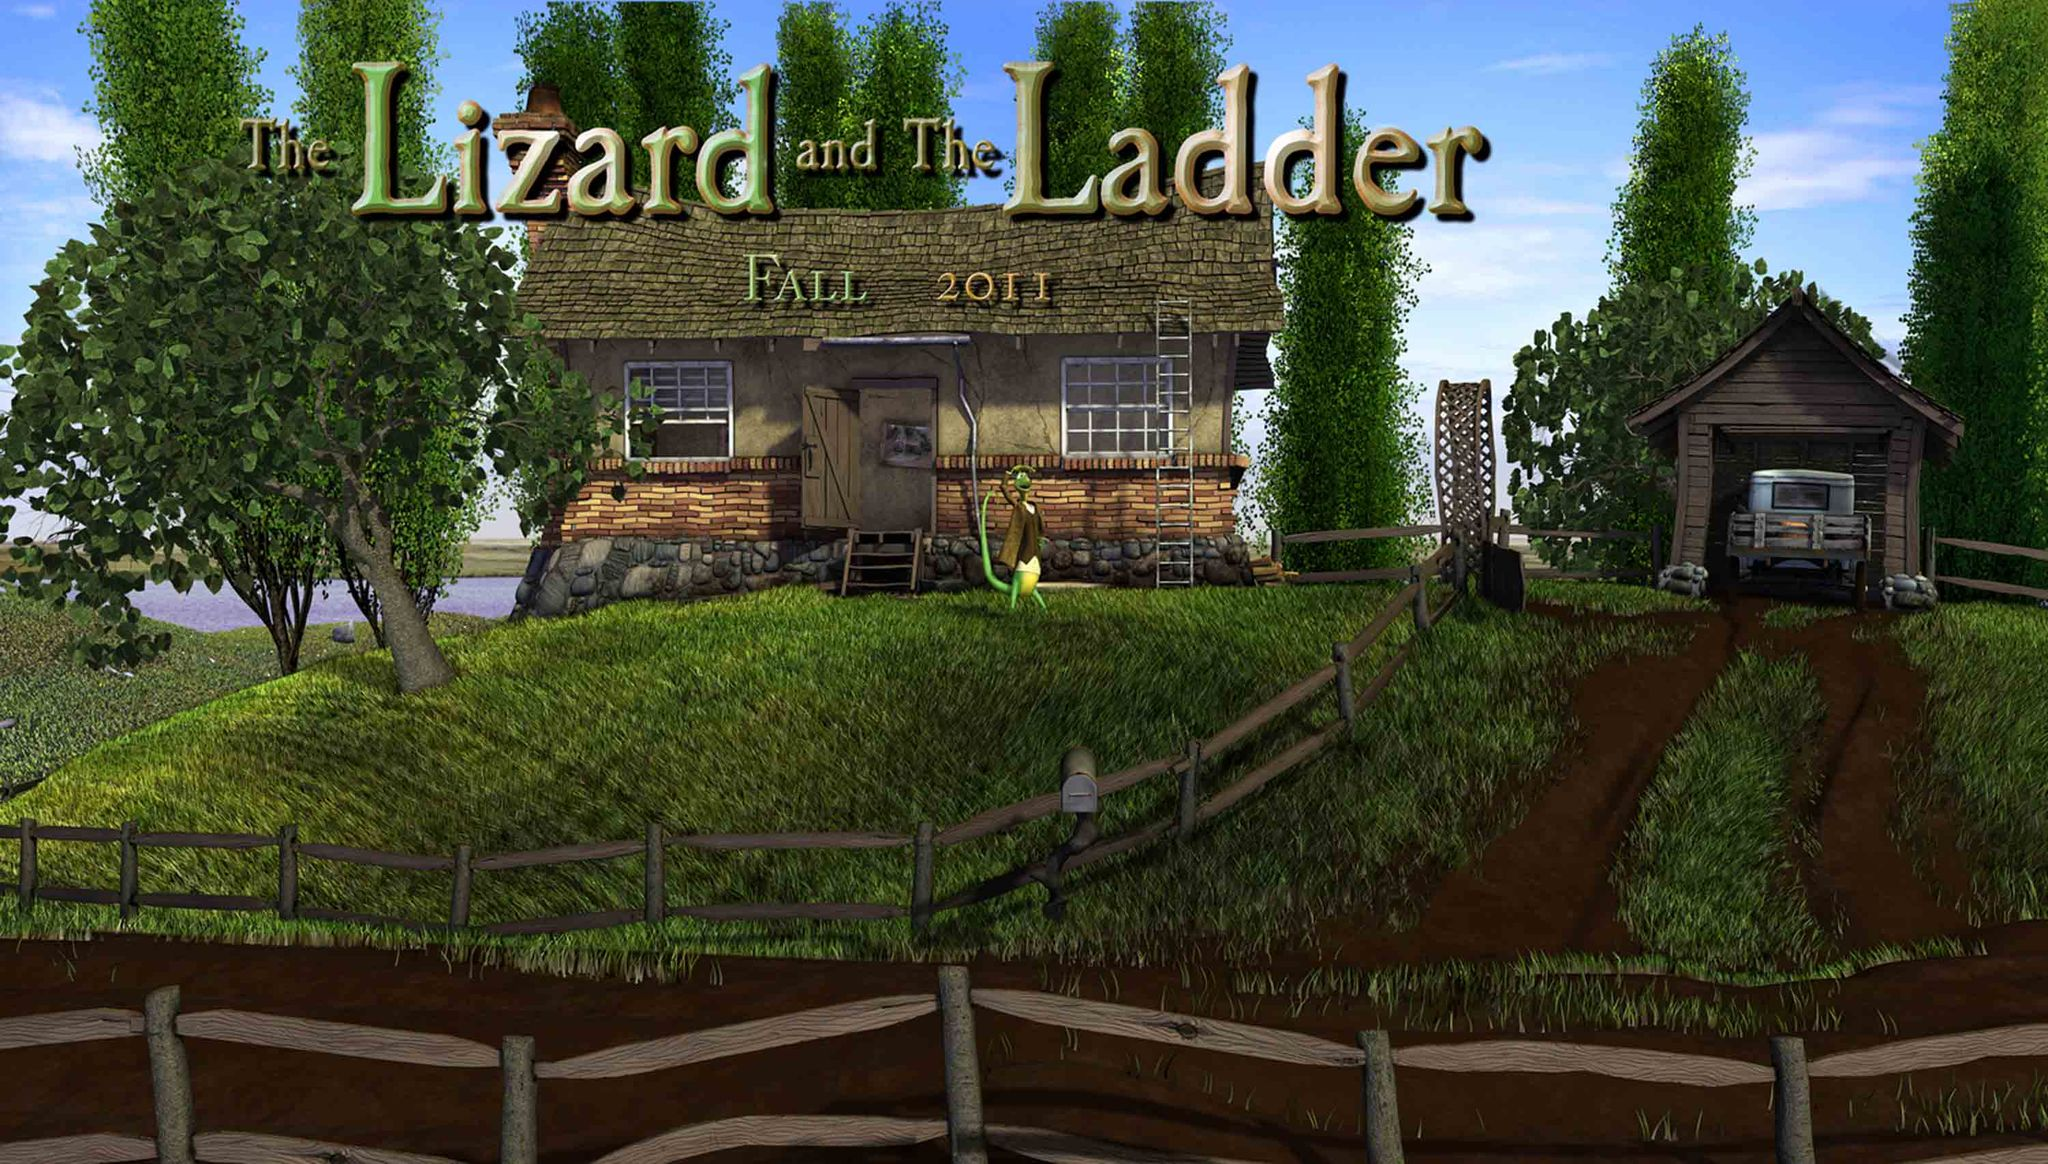 The Lizard & The Ladder